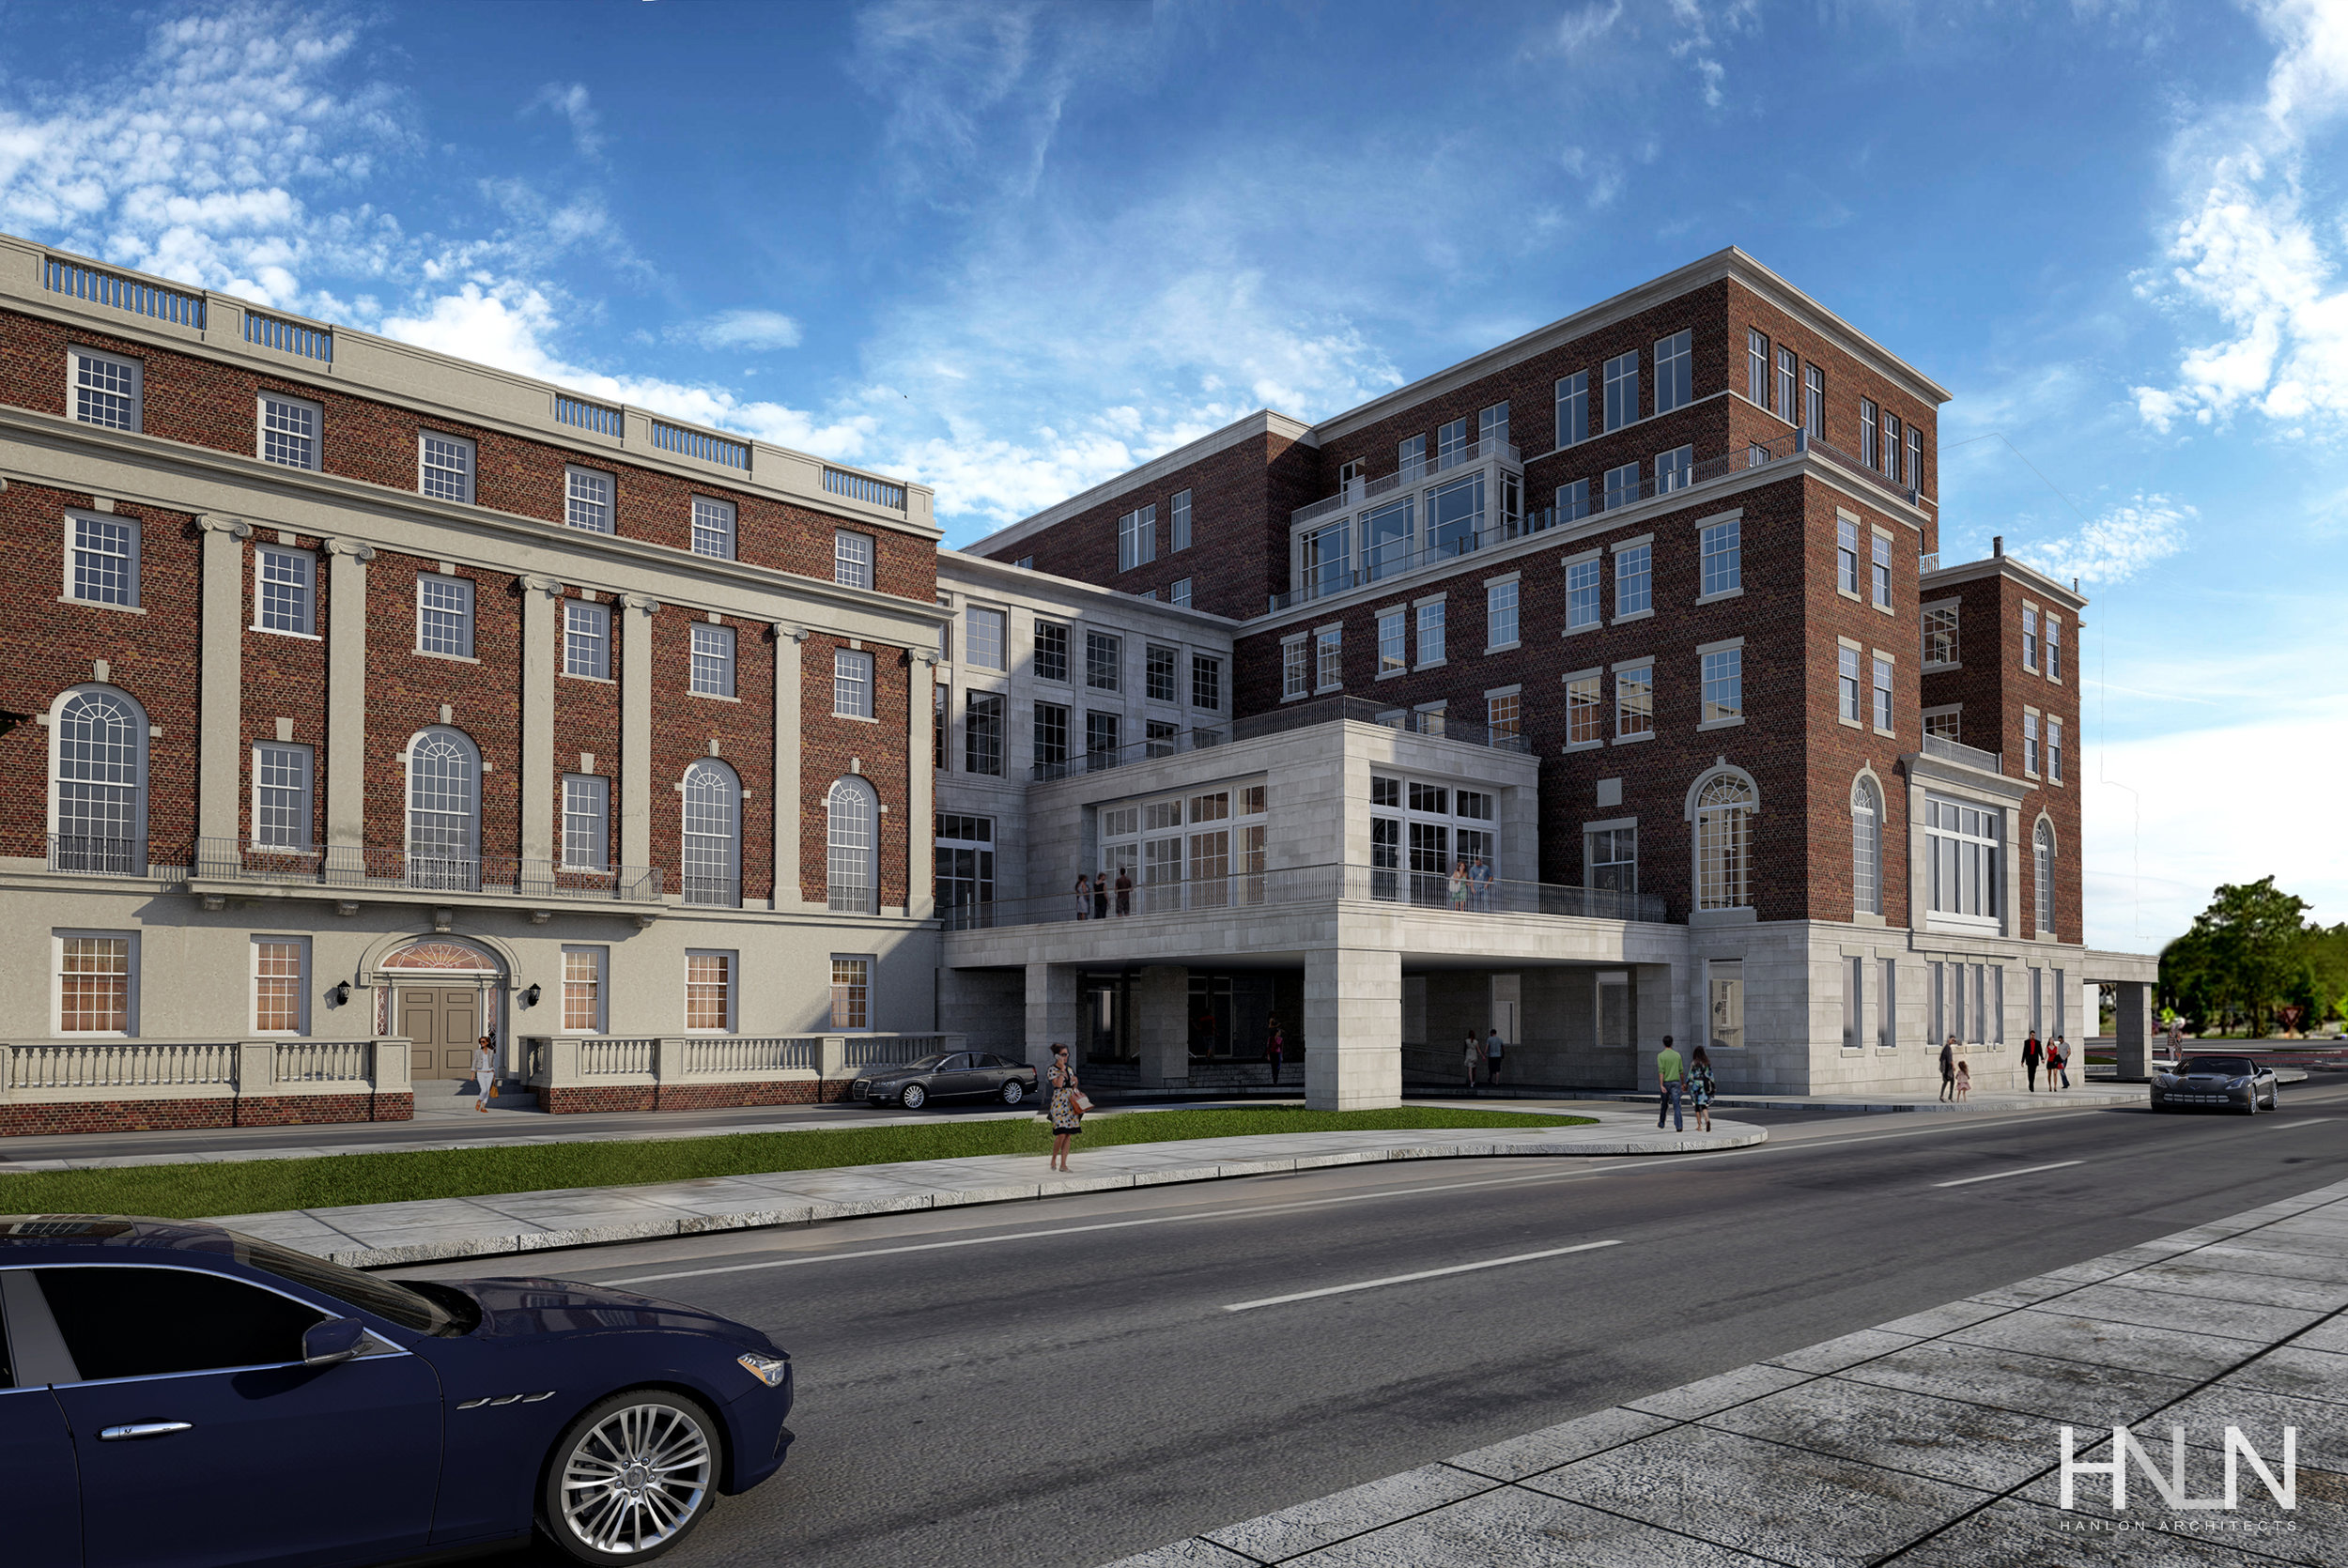 Inn on Broadway Rendering.jpg